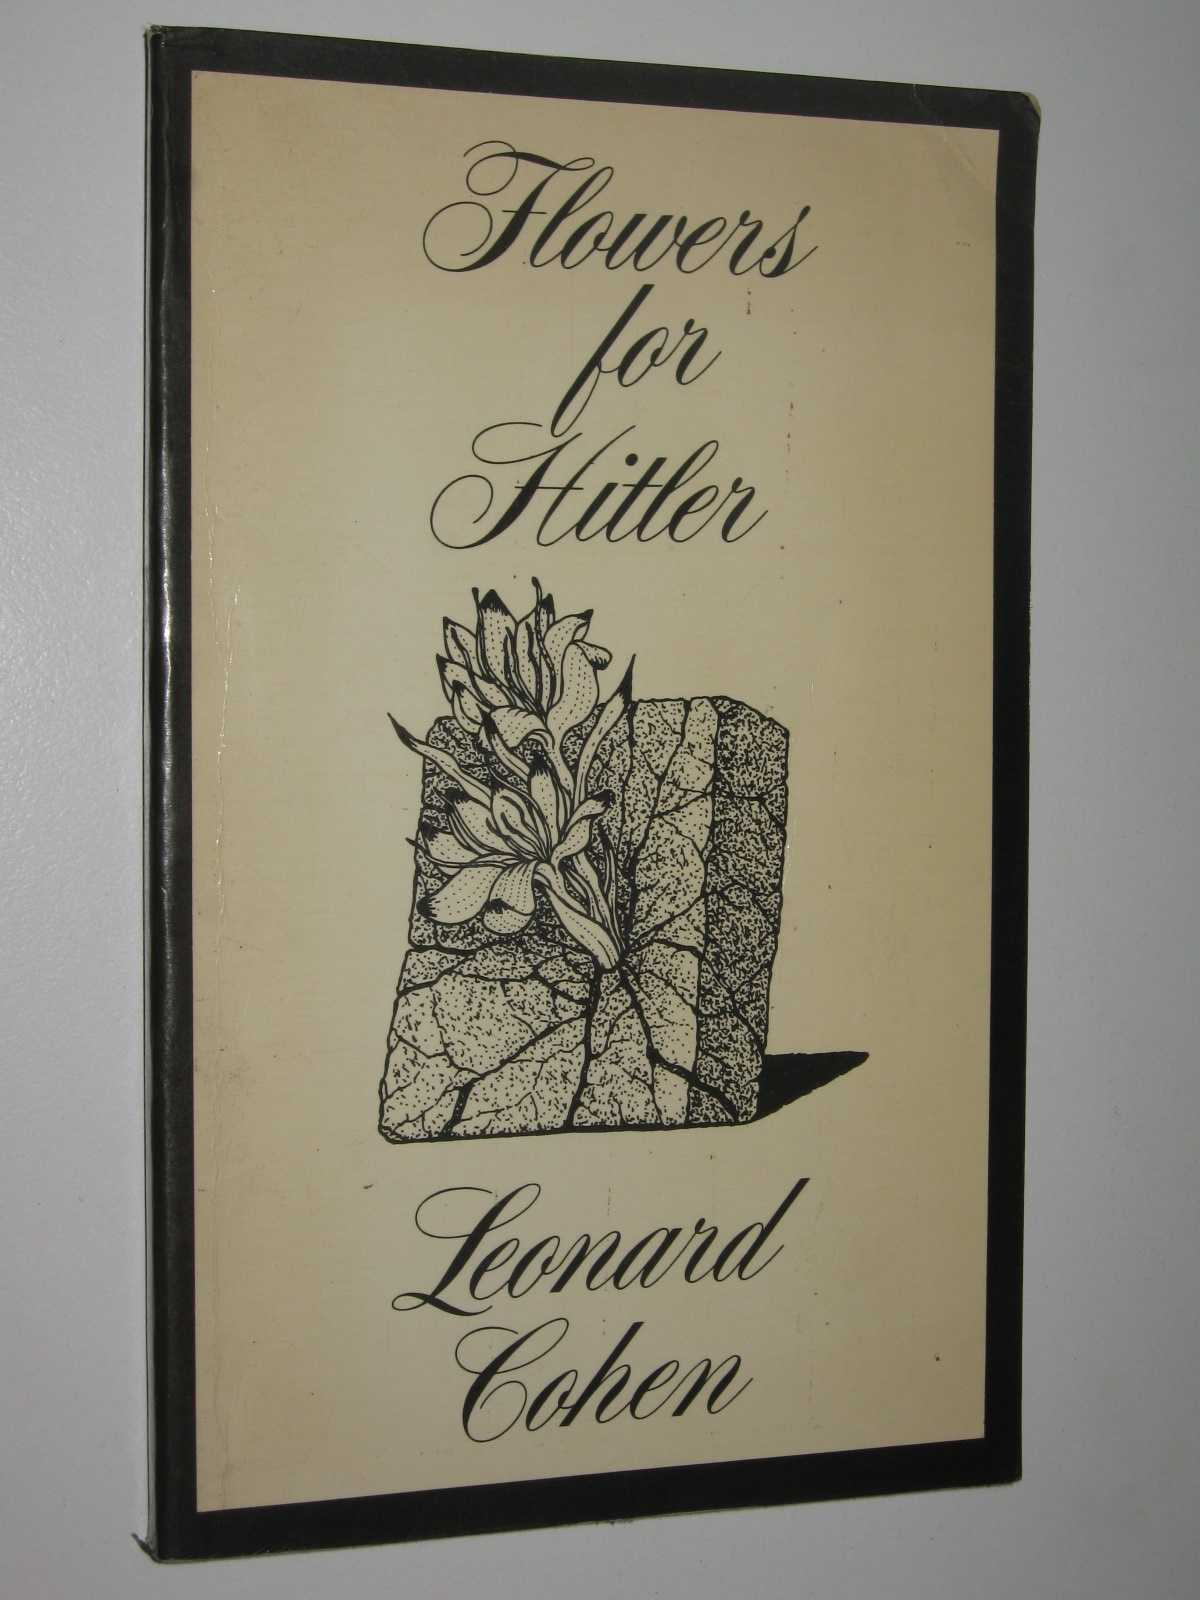 Flowers for Hitler, Cohen, Leonard